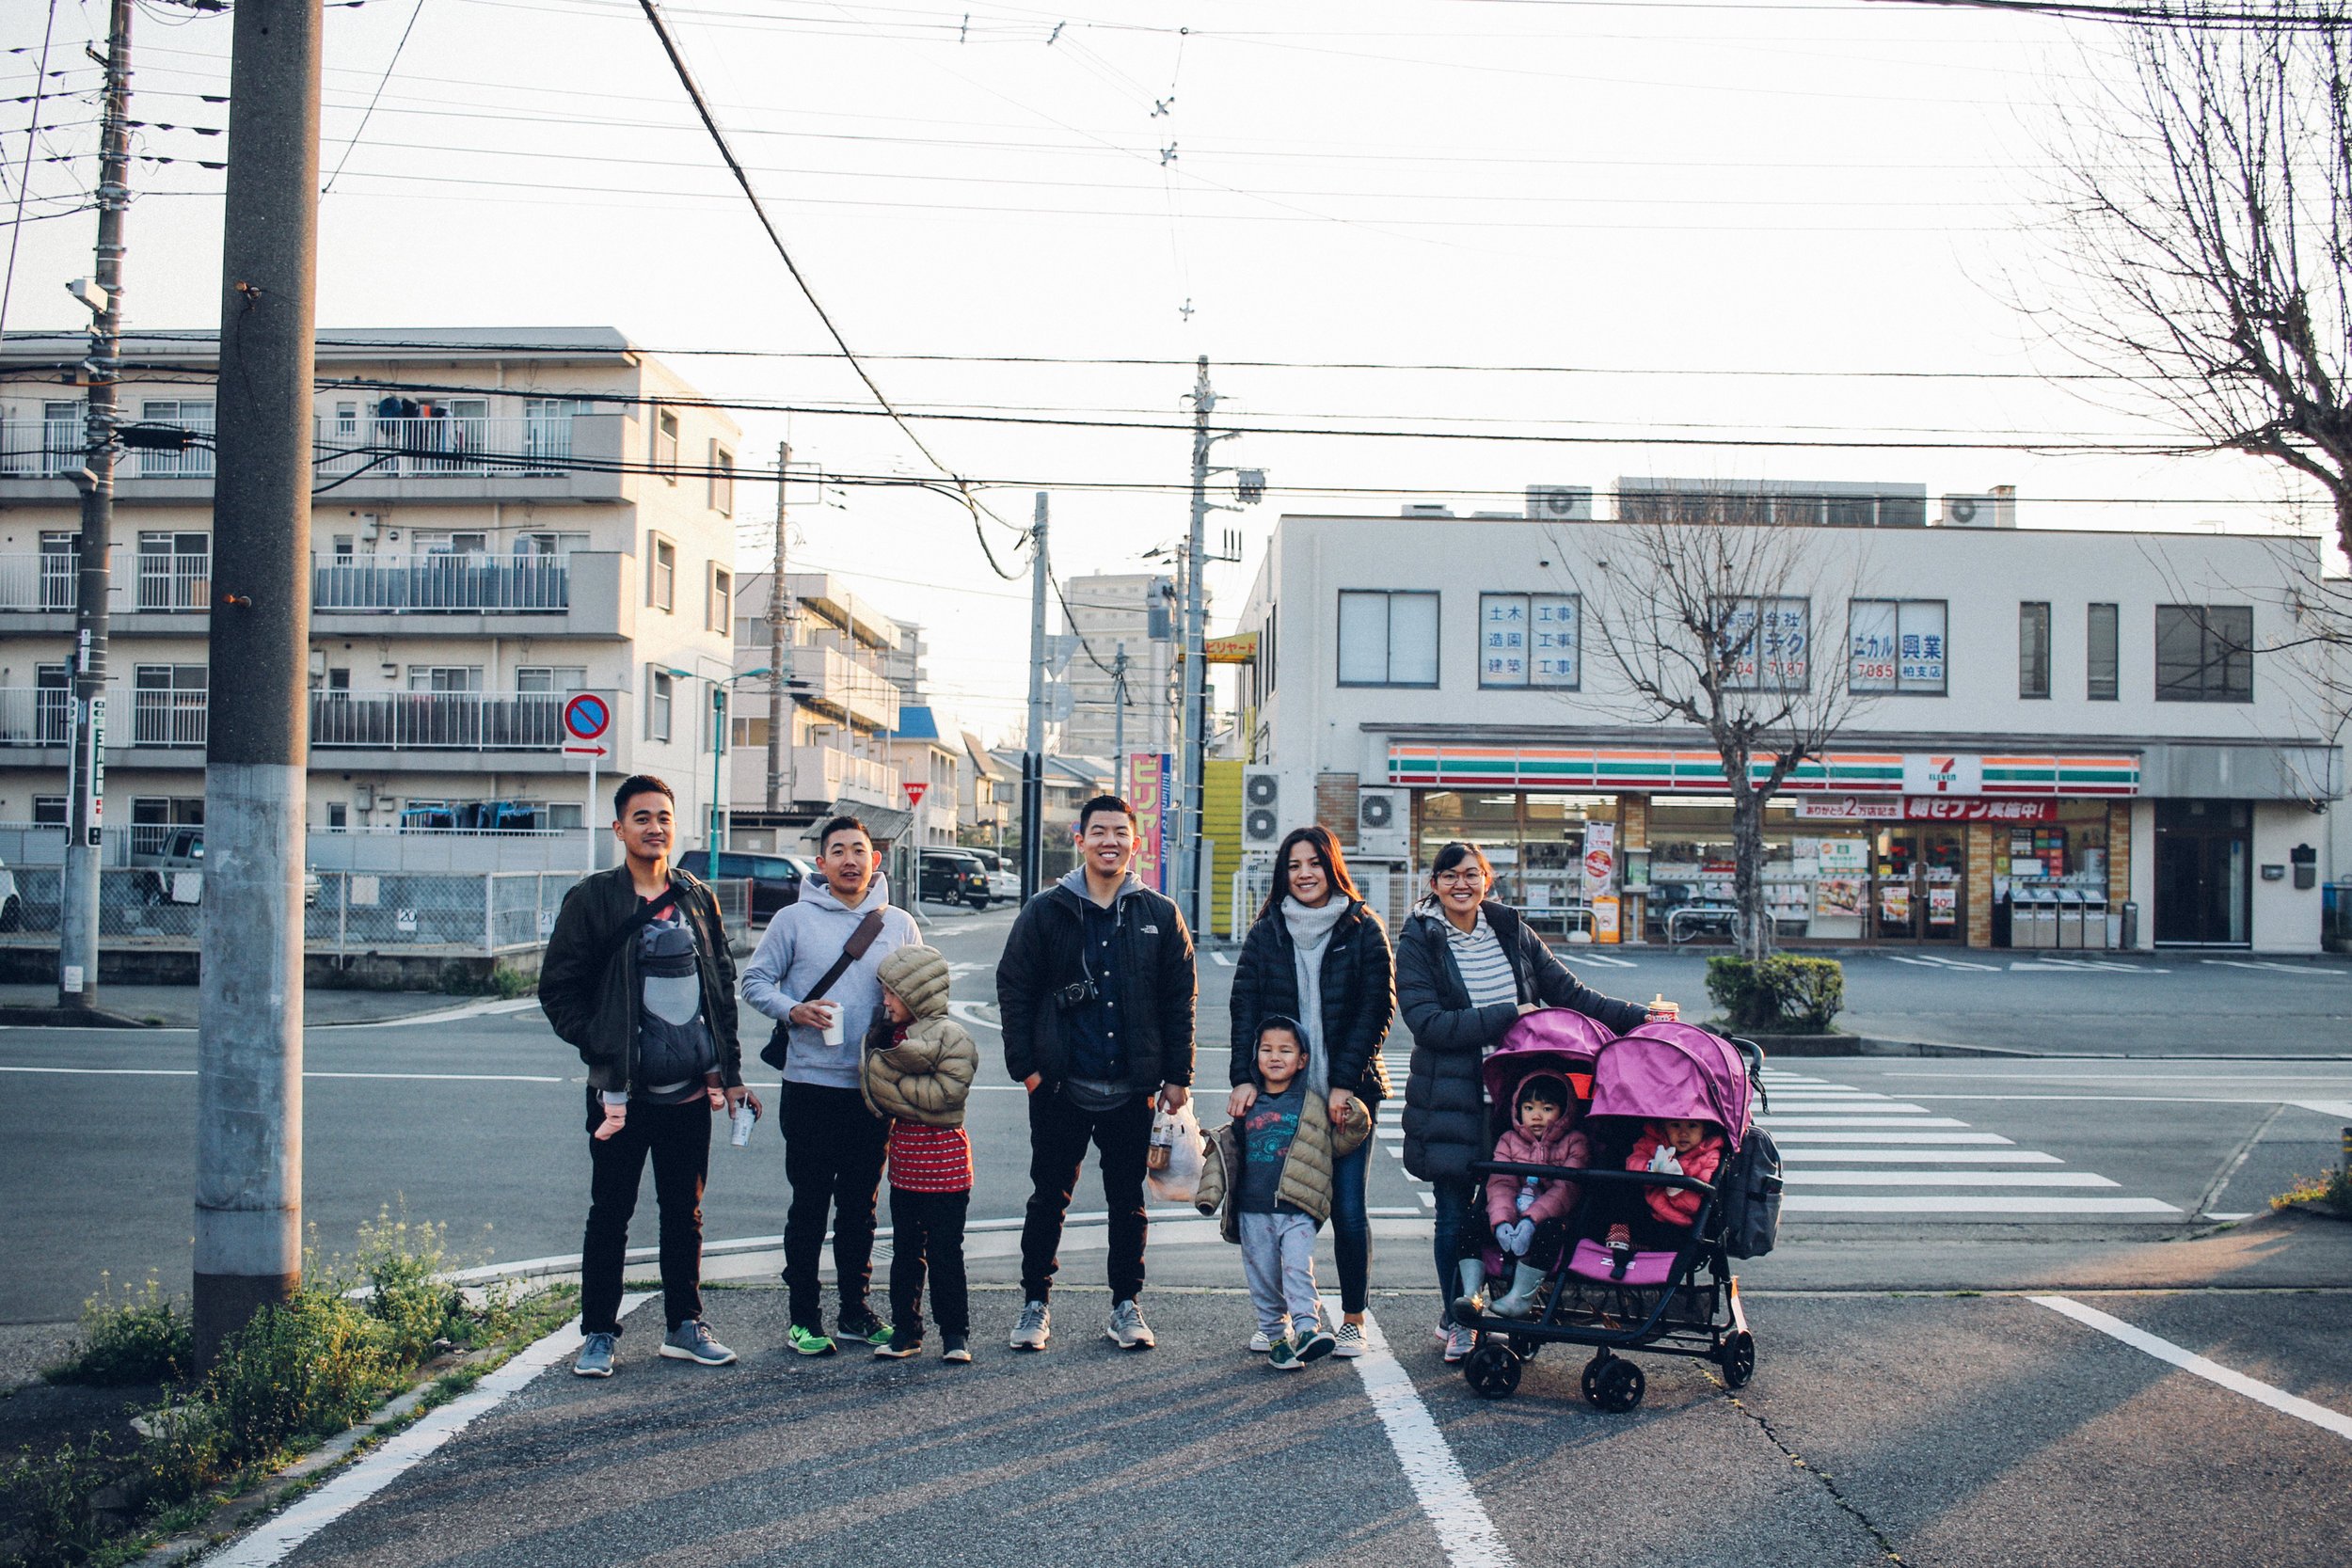 2. FAM IN JAPAN The biggest highlight of 2018 was having my family in Japan. This shot is particularly important since it was taken right in my neighborhood, across the street from the 7-11 I went to every day. I had lived in this area for two years before my family got to come see it with their own eyes. Having them in my hometown in Japan meant the world to me. This morning in particular, is a moment I will never forget.